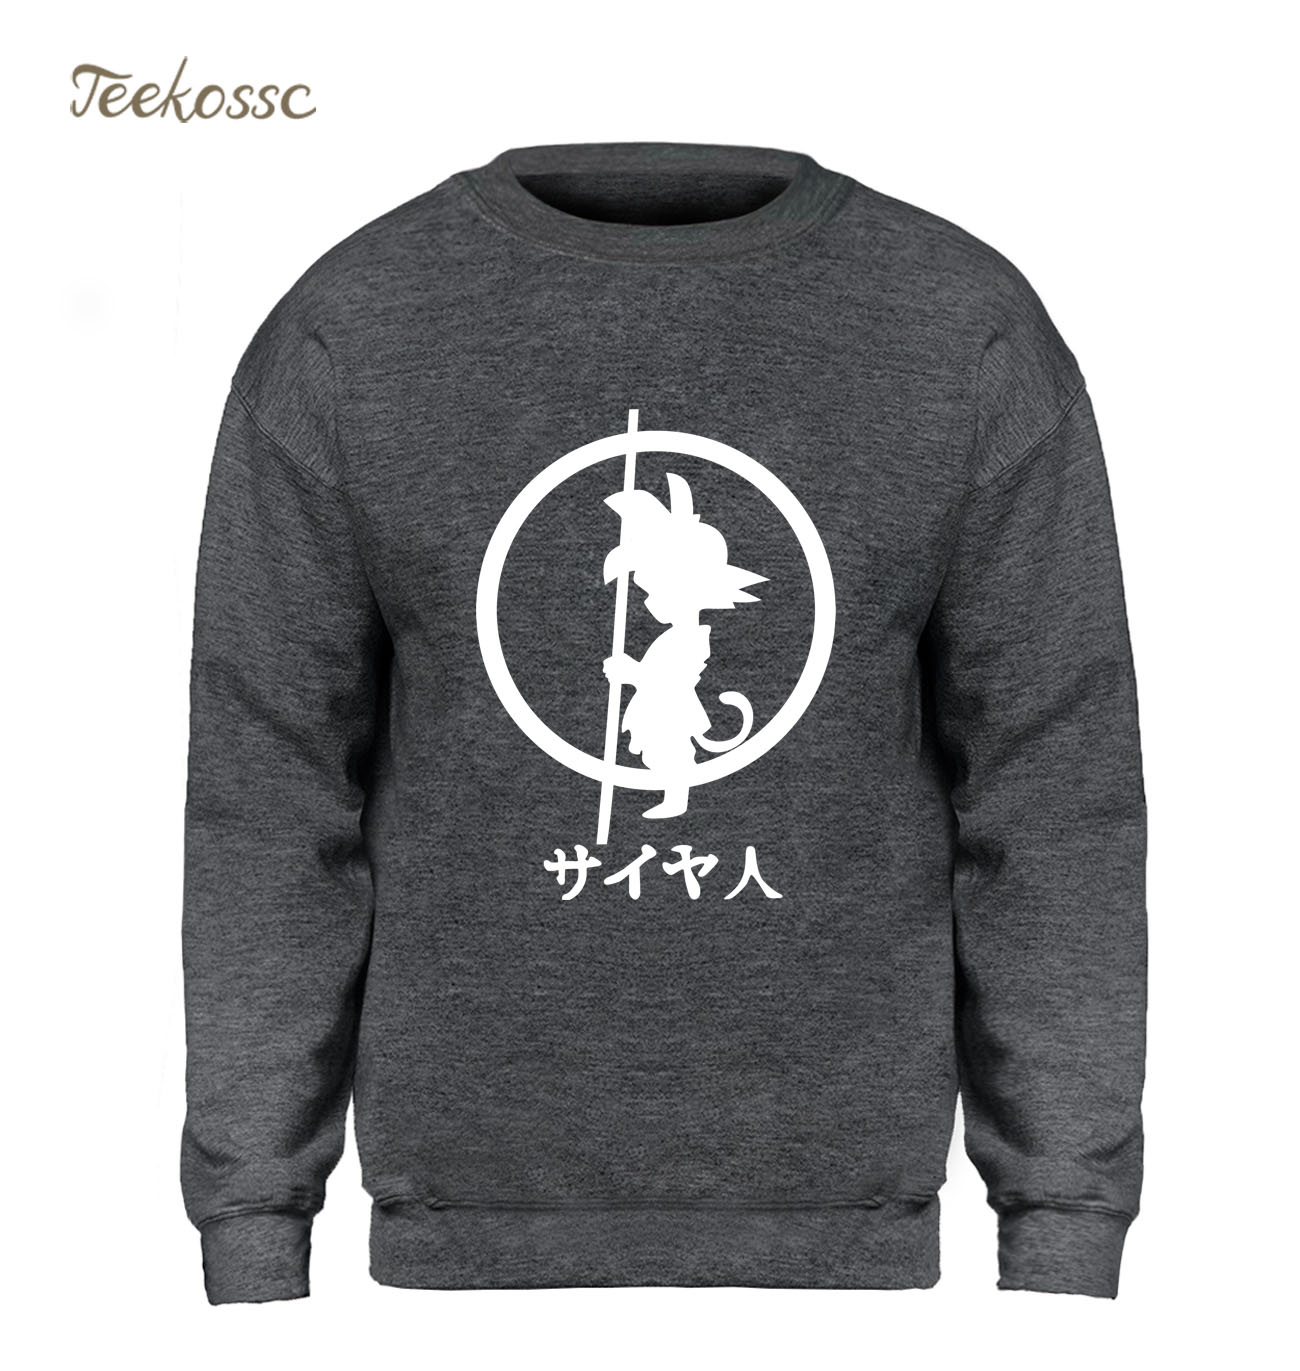 Anime Dragon Ball Hoodie Men Super Saiyan Sweatshirt Winter Autumn Fleece Warm Vegeta Harajuku Sweatshirts Gyms-Clothing Homen